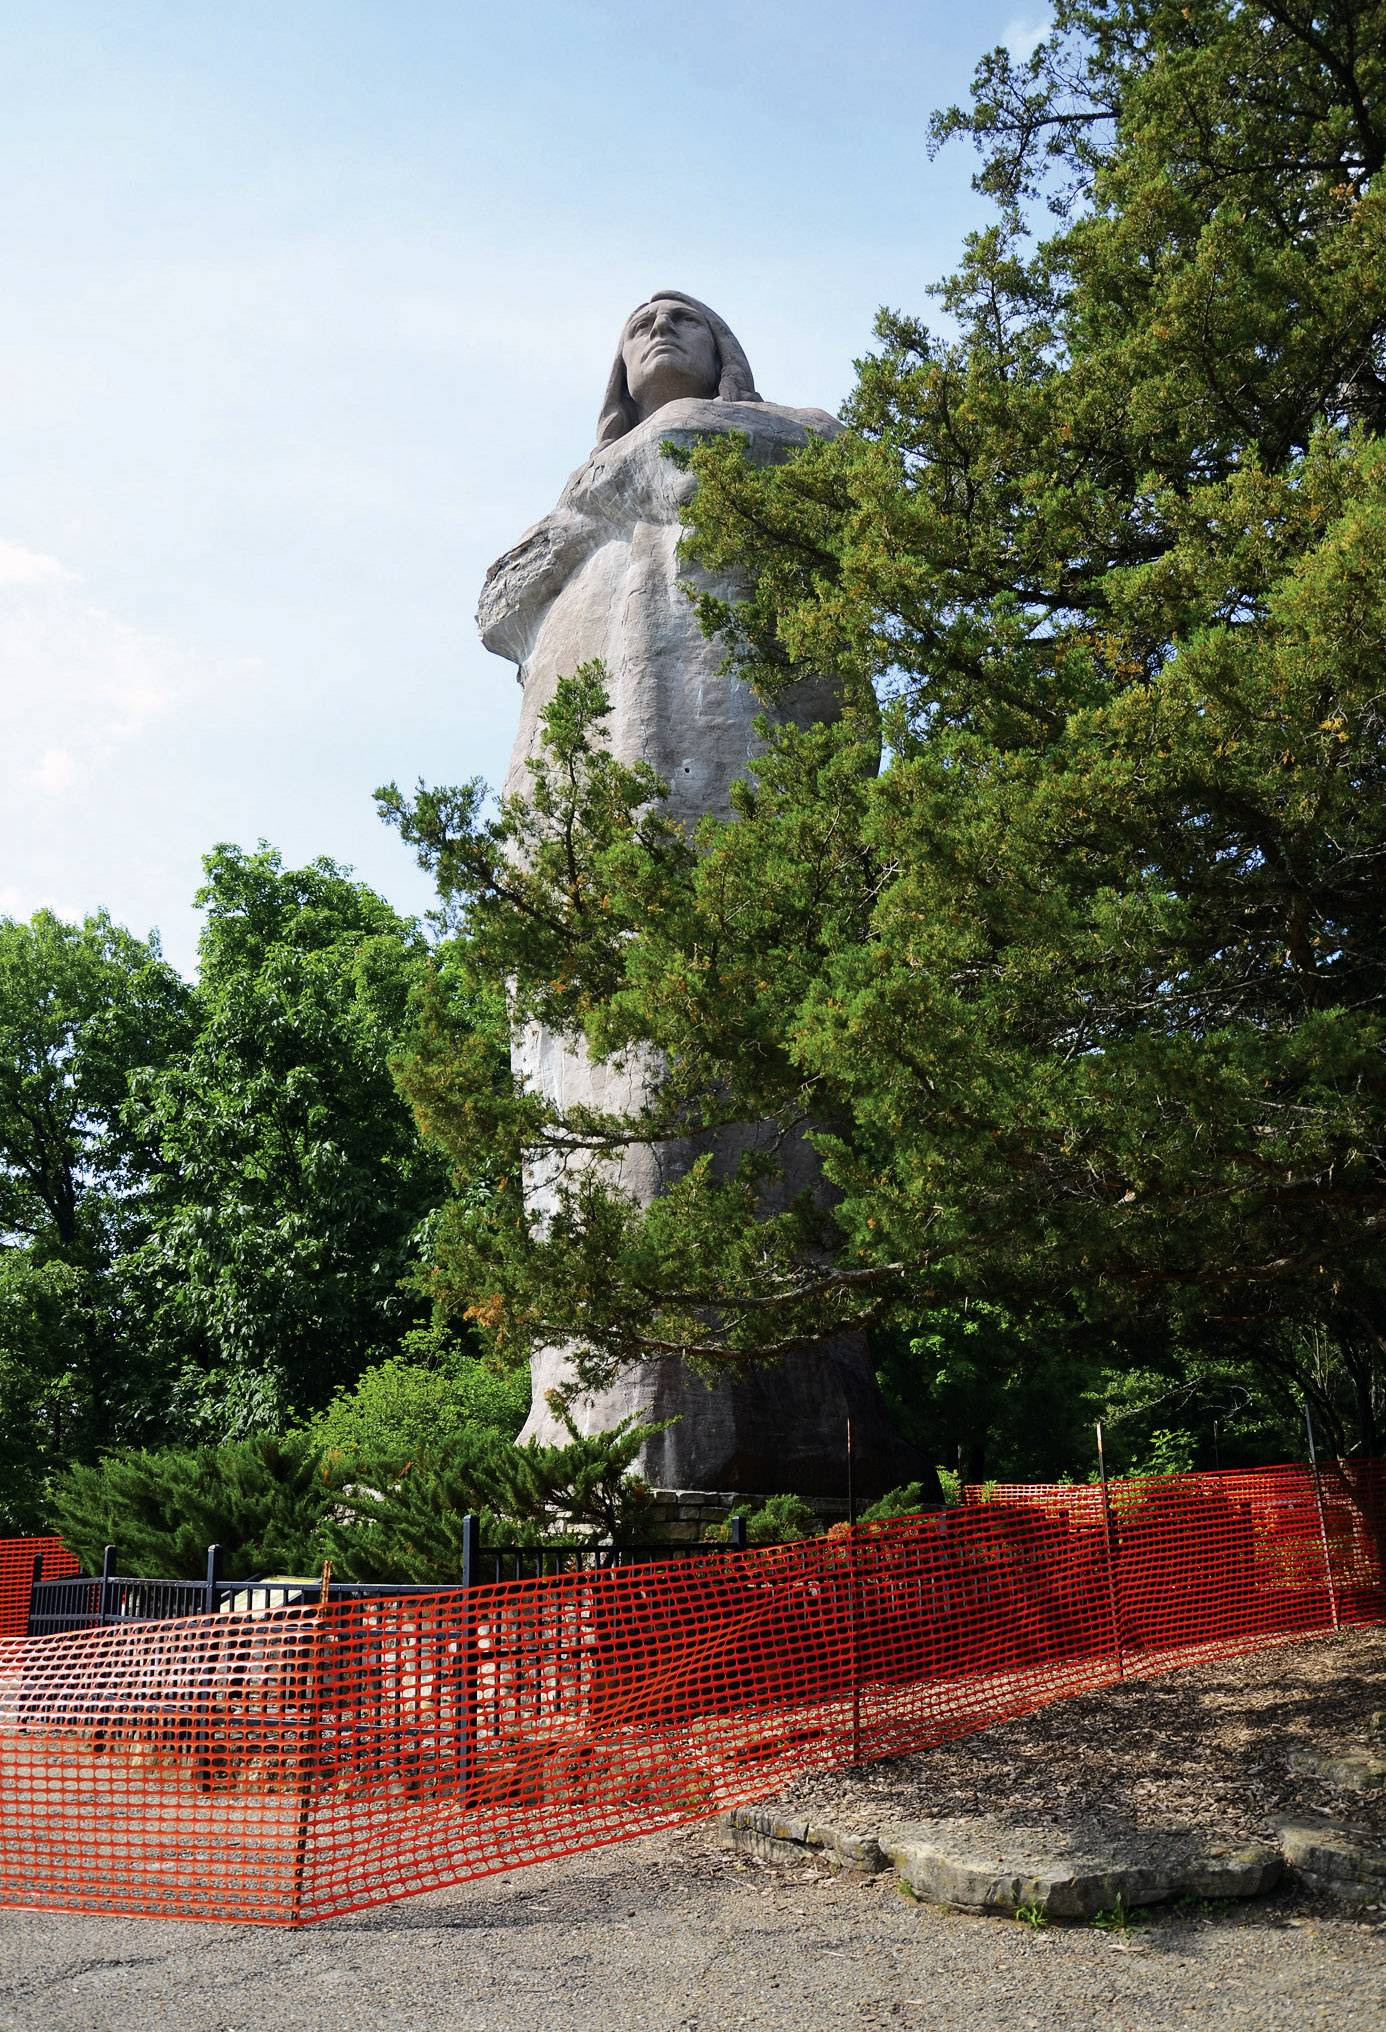 Fencing around the 50-foot Black Hawk statue at Lowden State Park protects visitors in case more parts fall off.